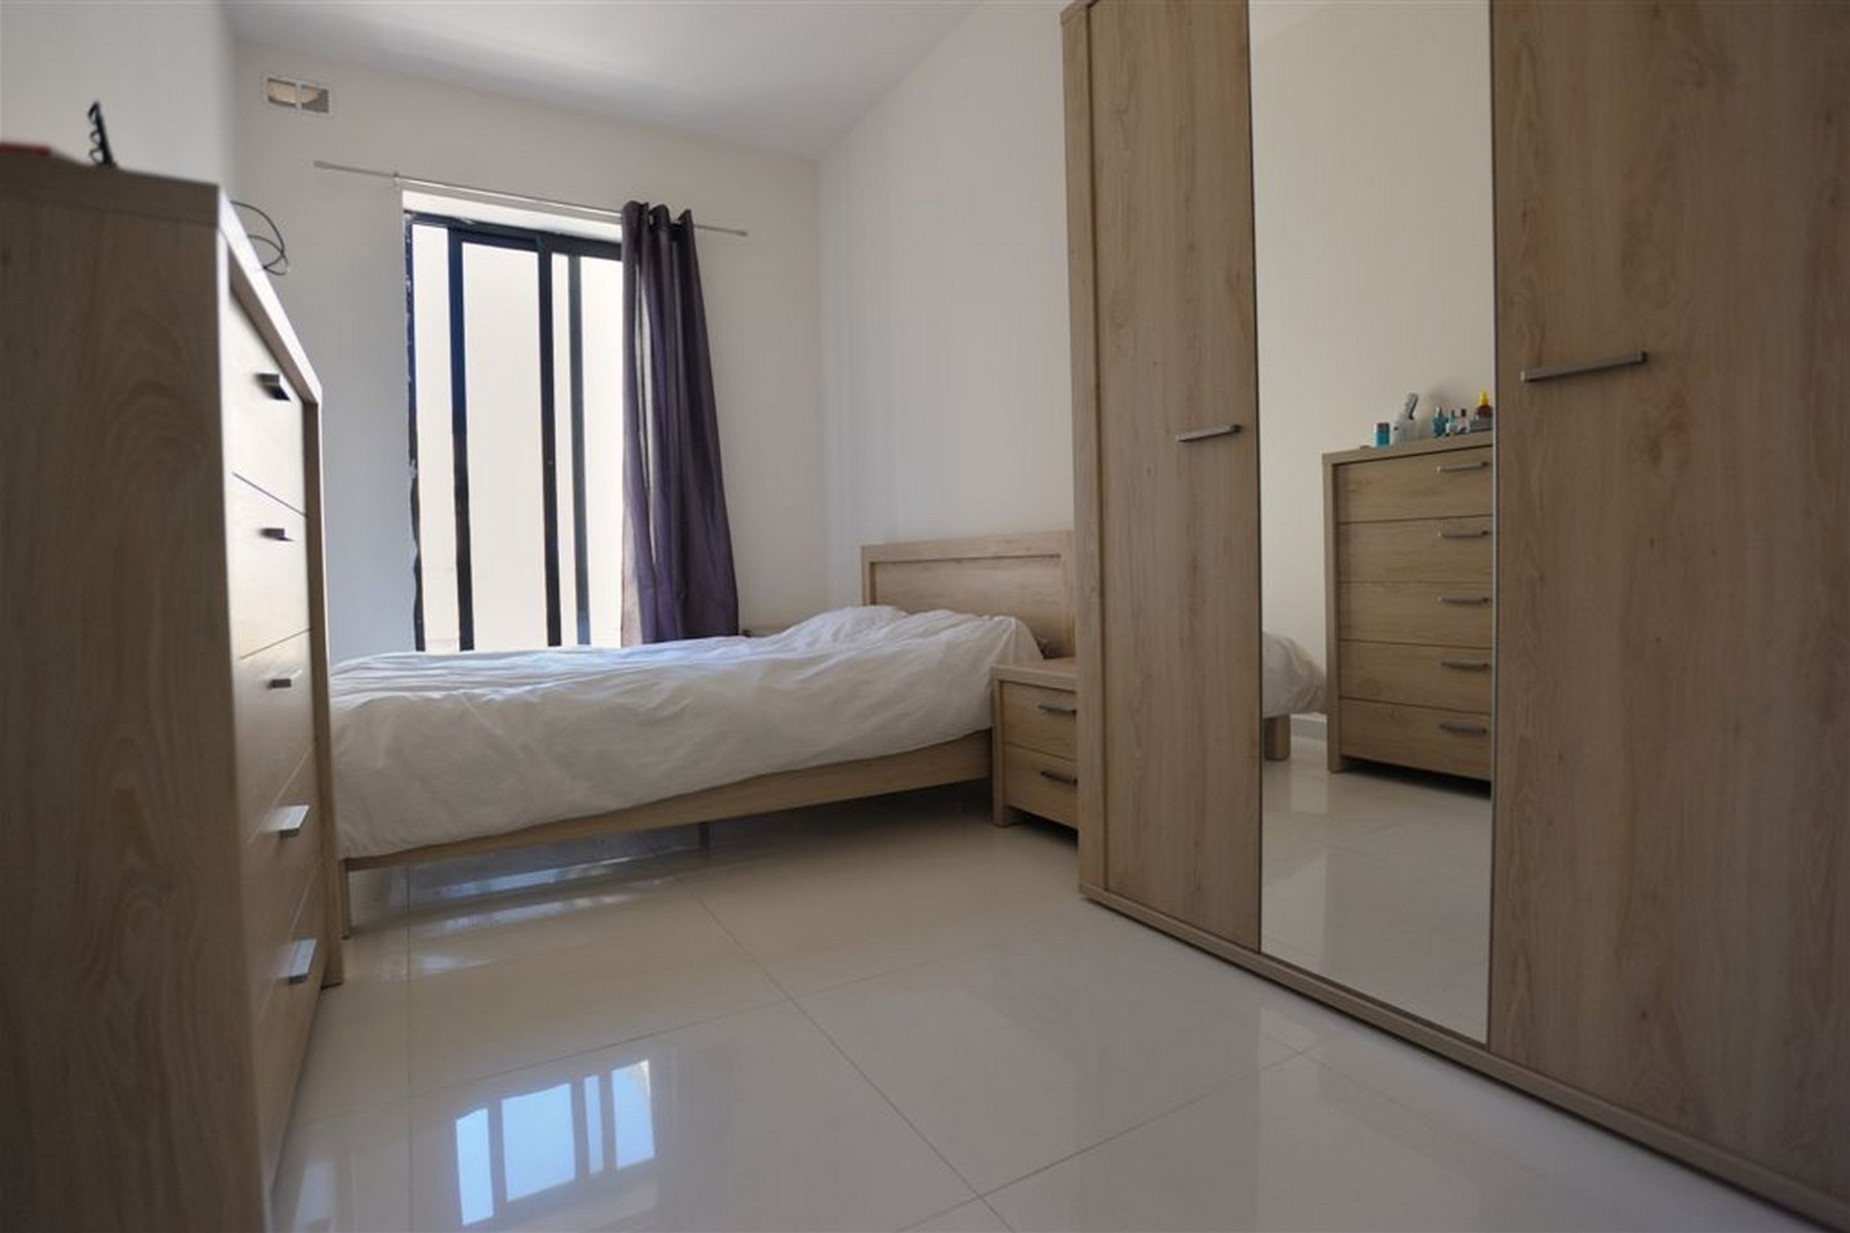 3 bed Penthouse For Rent in Gzira, Gzira - thumb 7